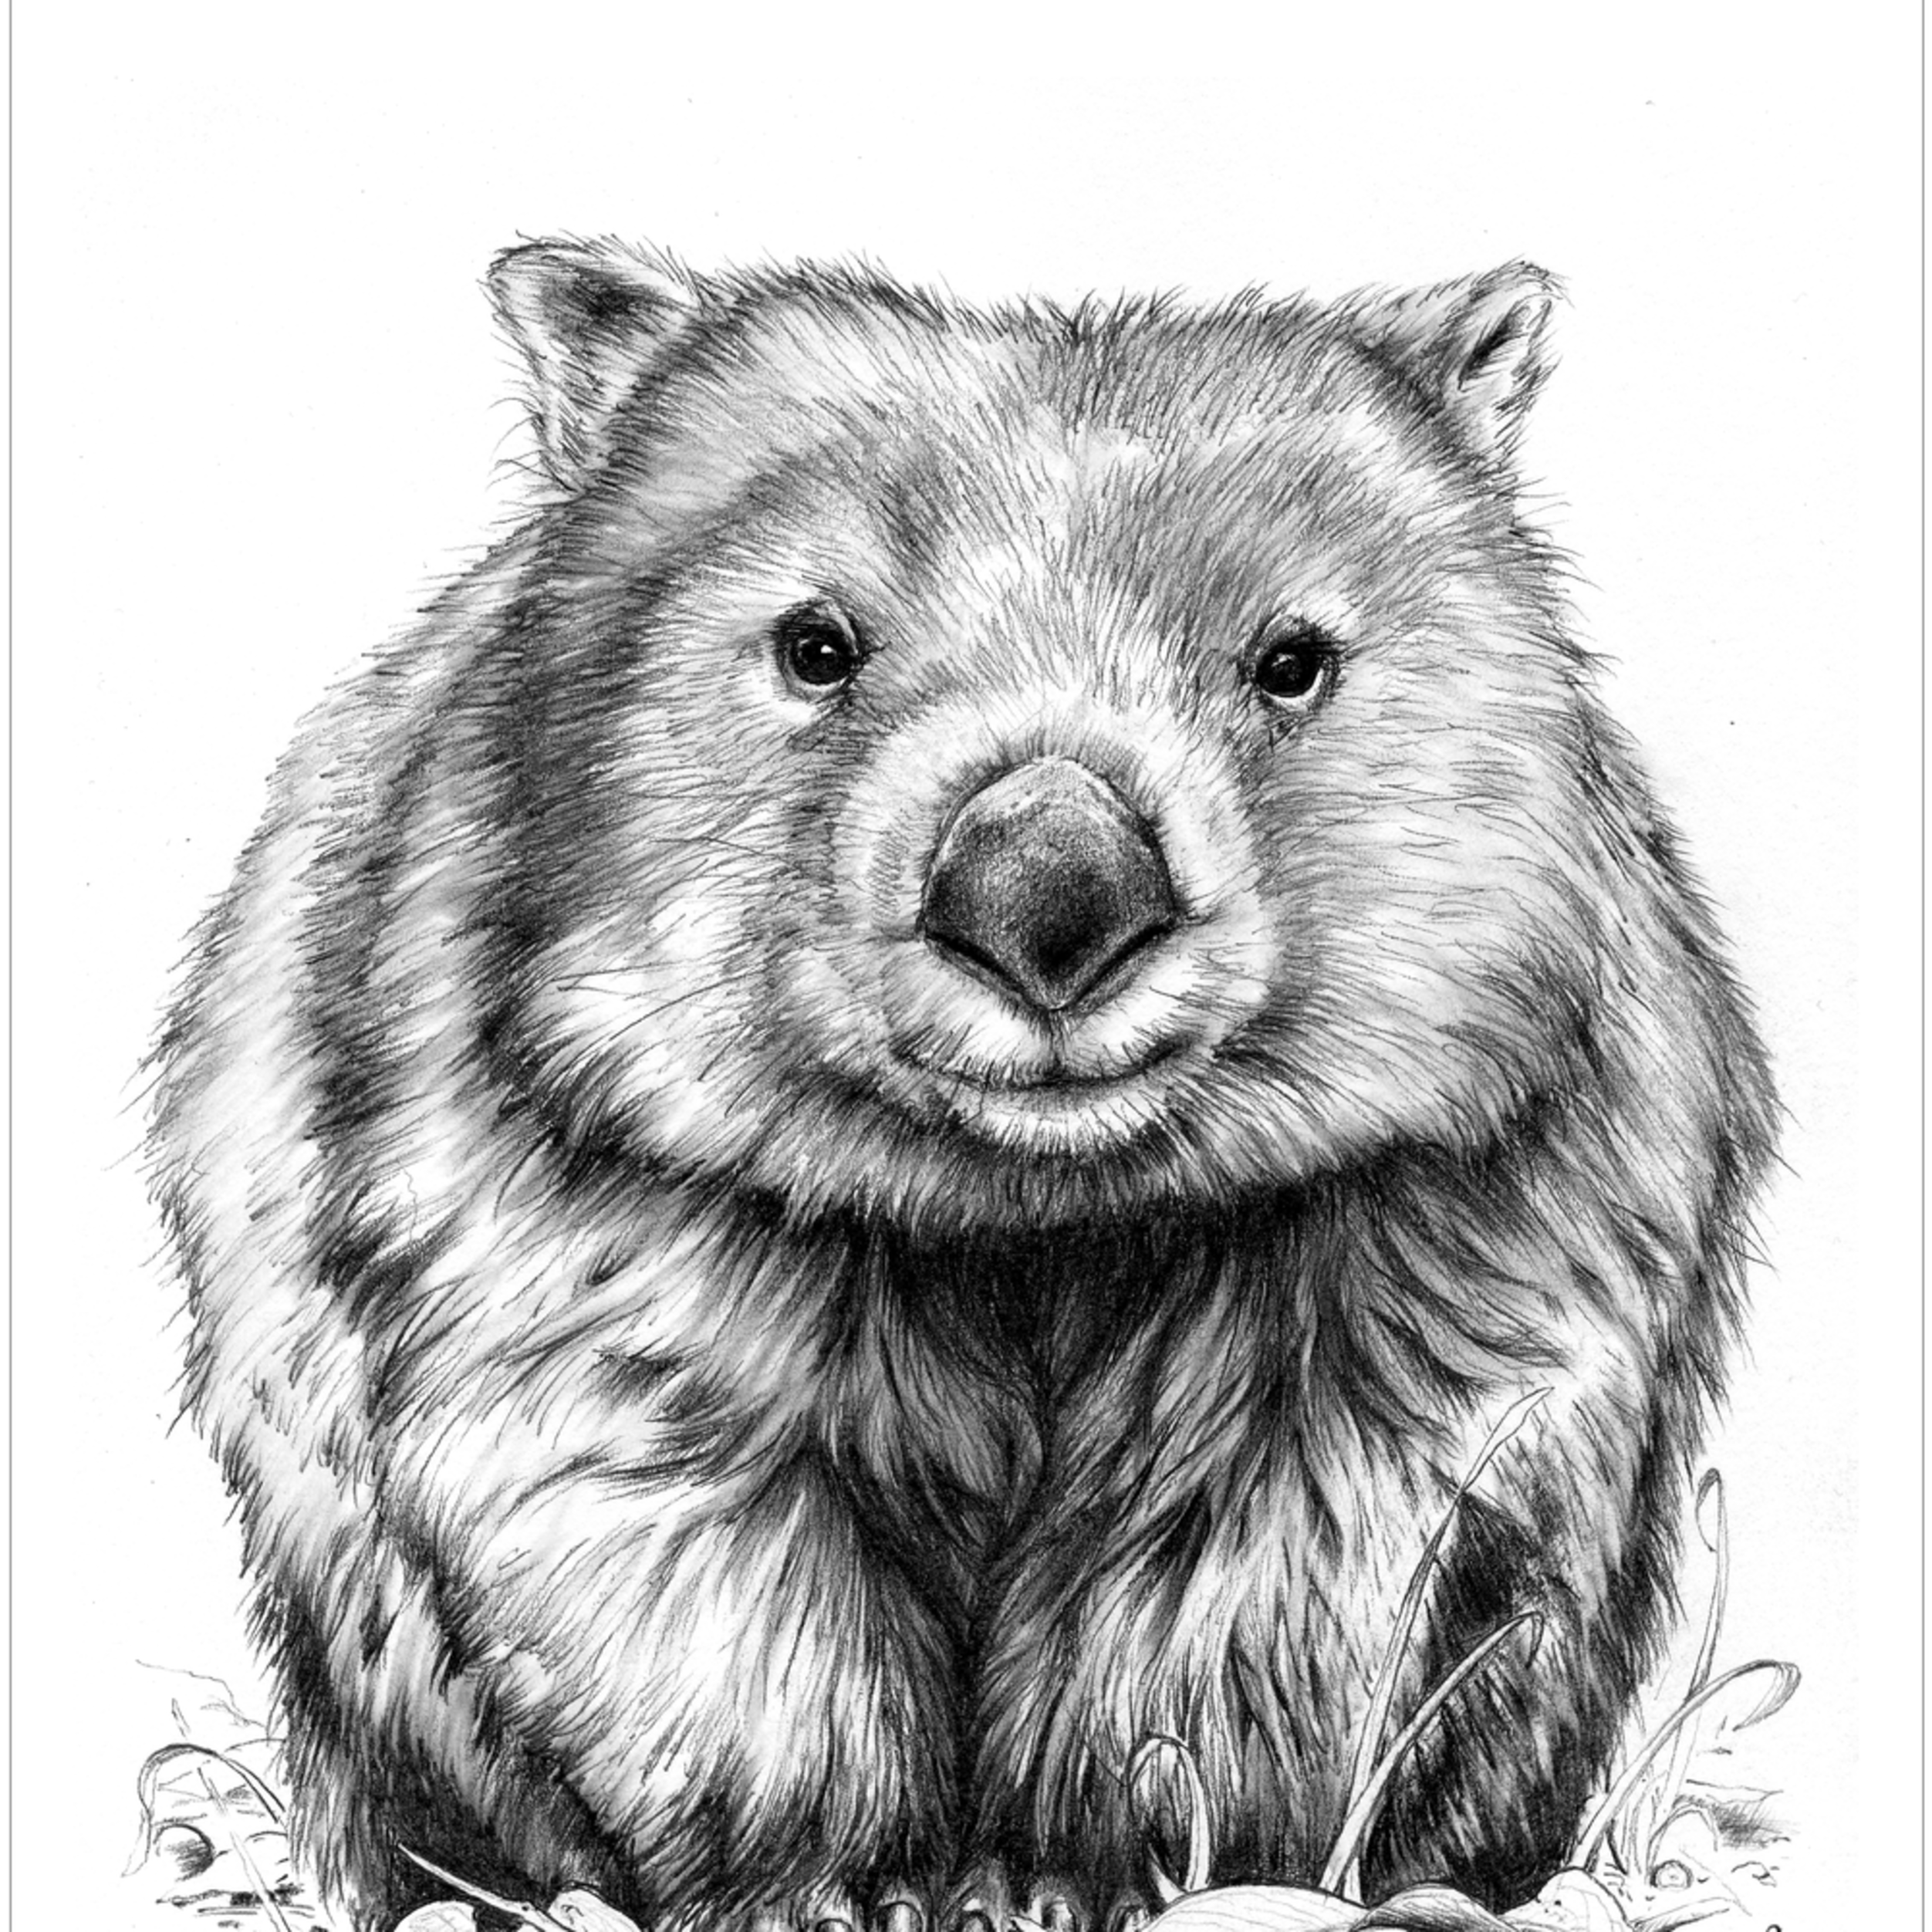 Wombat pencil drawing may2020 jruzkv